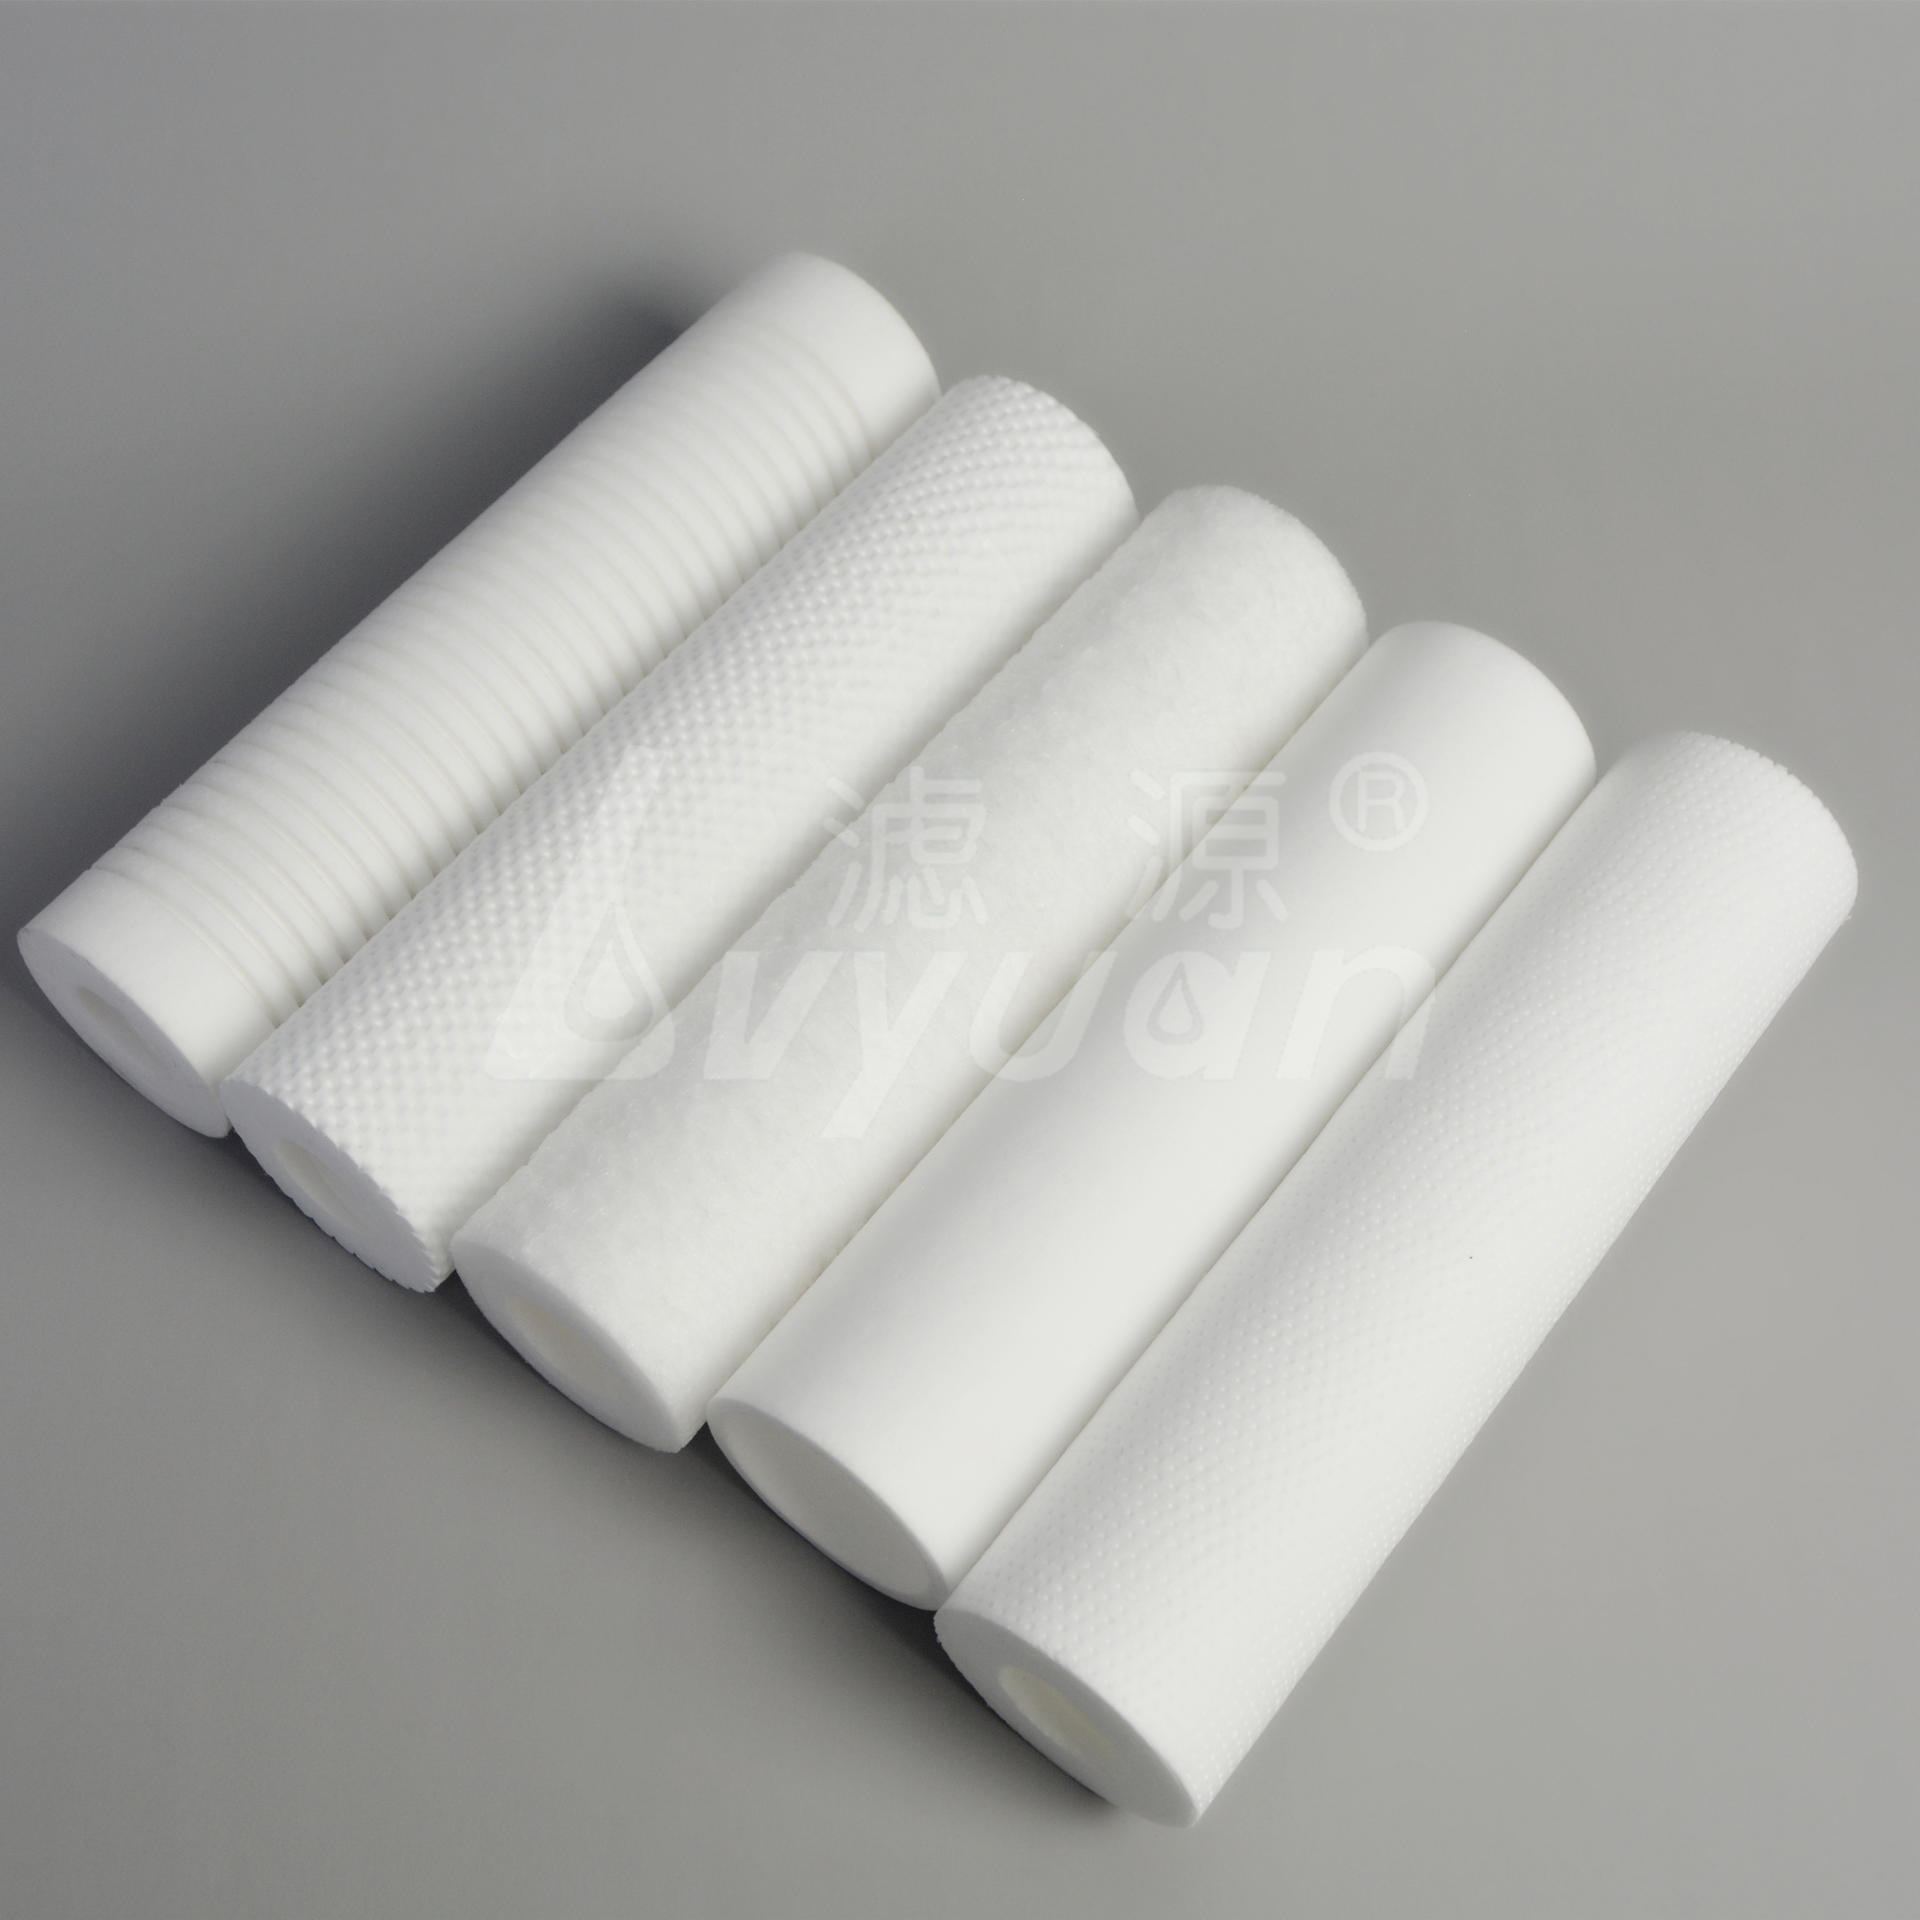 10 Inch PP melt blown Filter Cartridge sedeiment Water Cartridge 1 5 10 micon customized surface